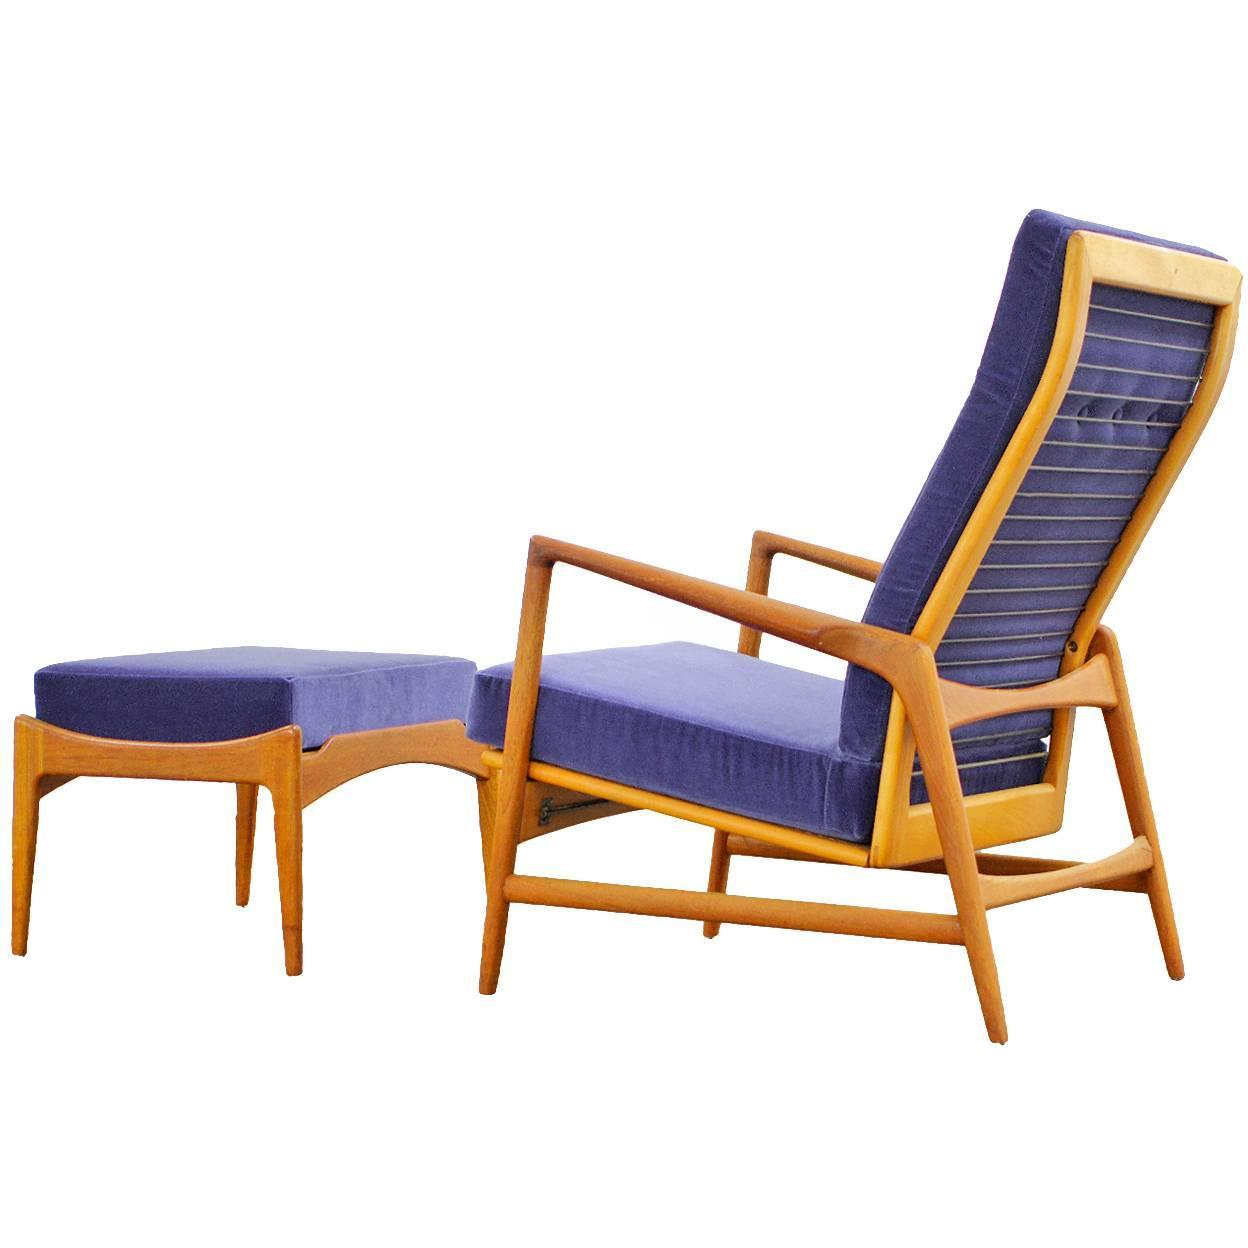 This sculptural pair of lounge chairs by ib kofod larsen is no longer - Danish Modern Reclining Lounge Chair And Ottoman By Ib Kofod Larsen Selig Teak For Sale At 1stdibs